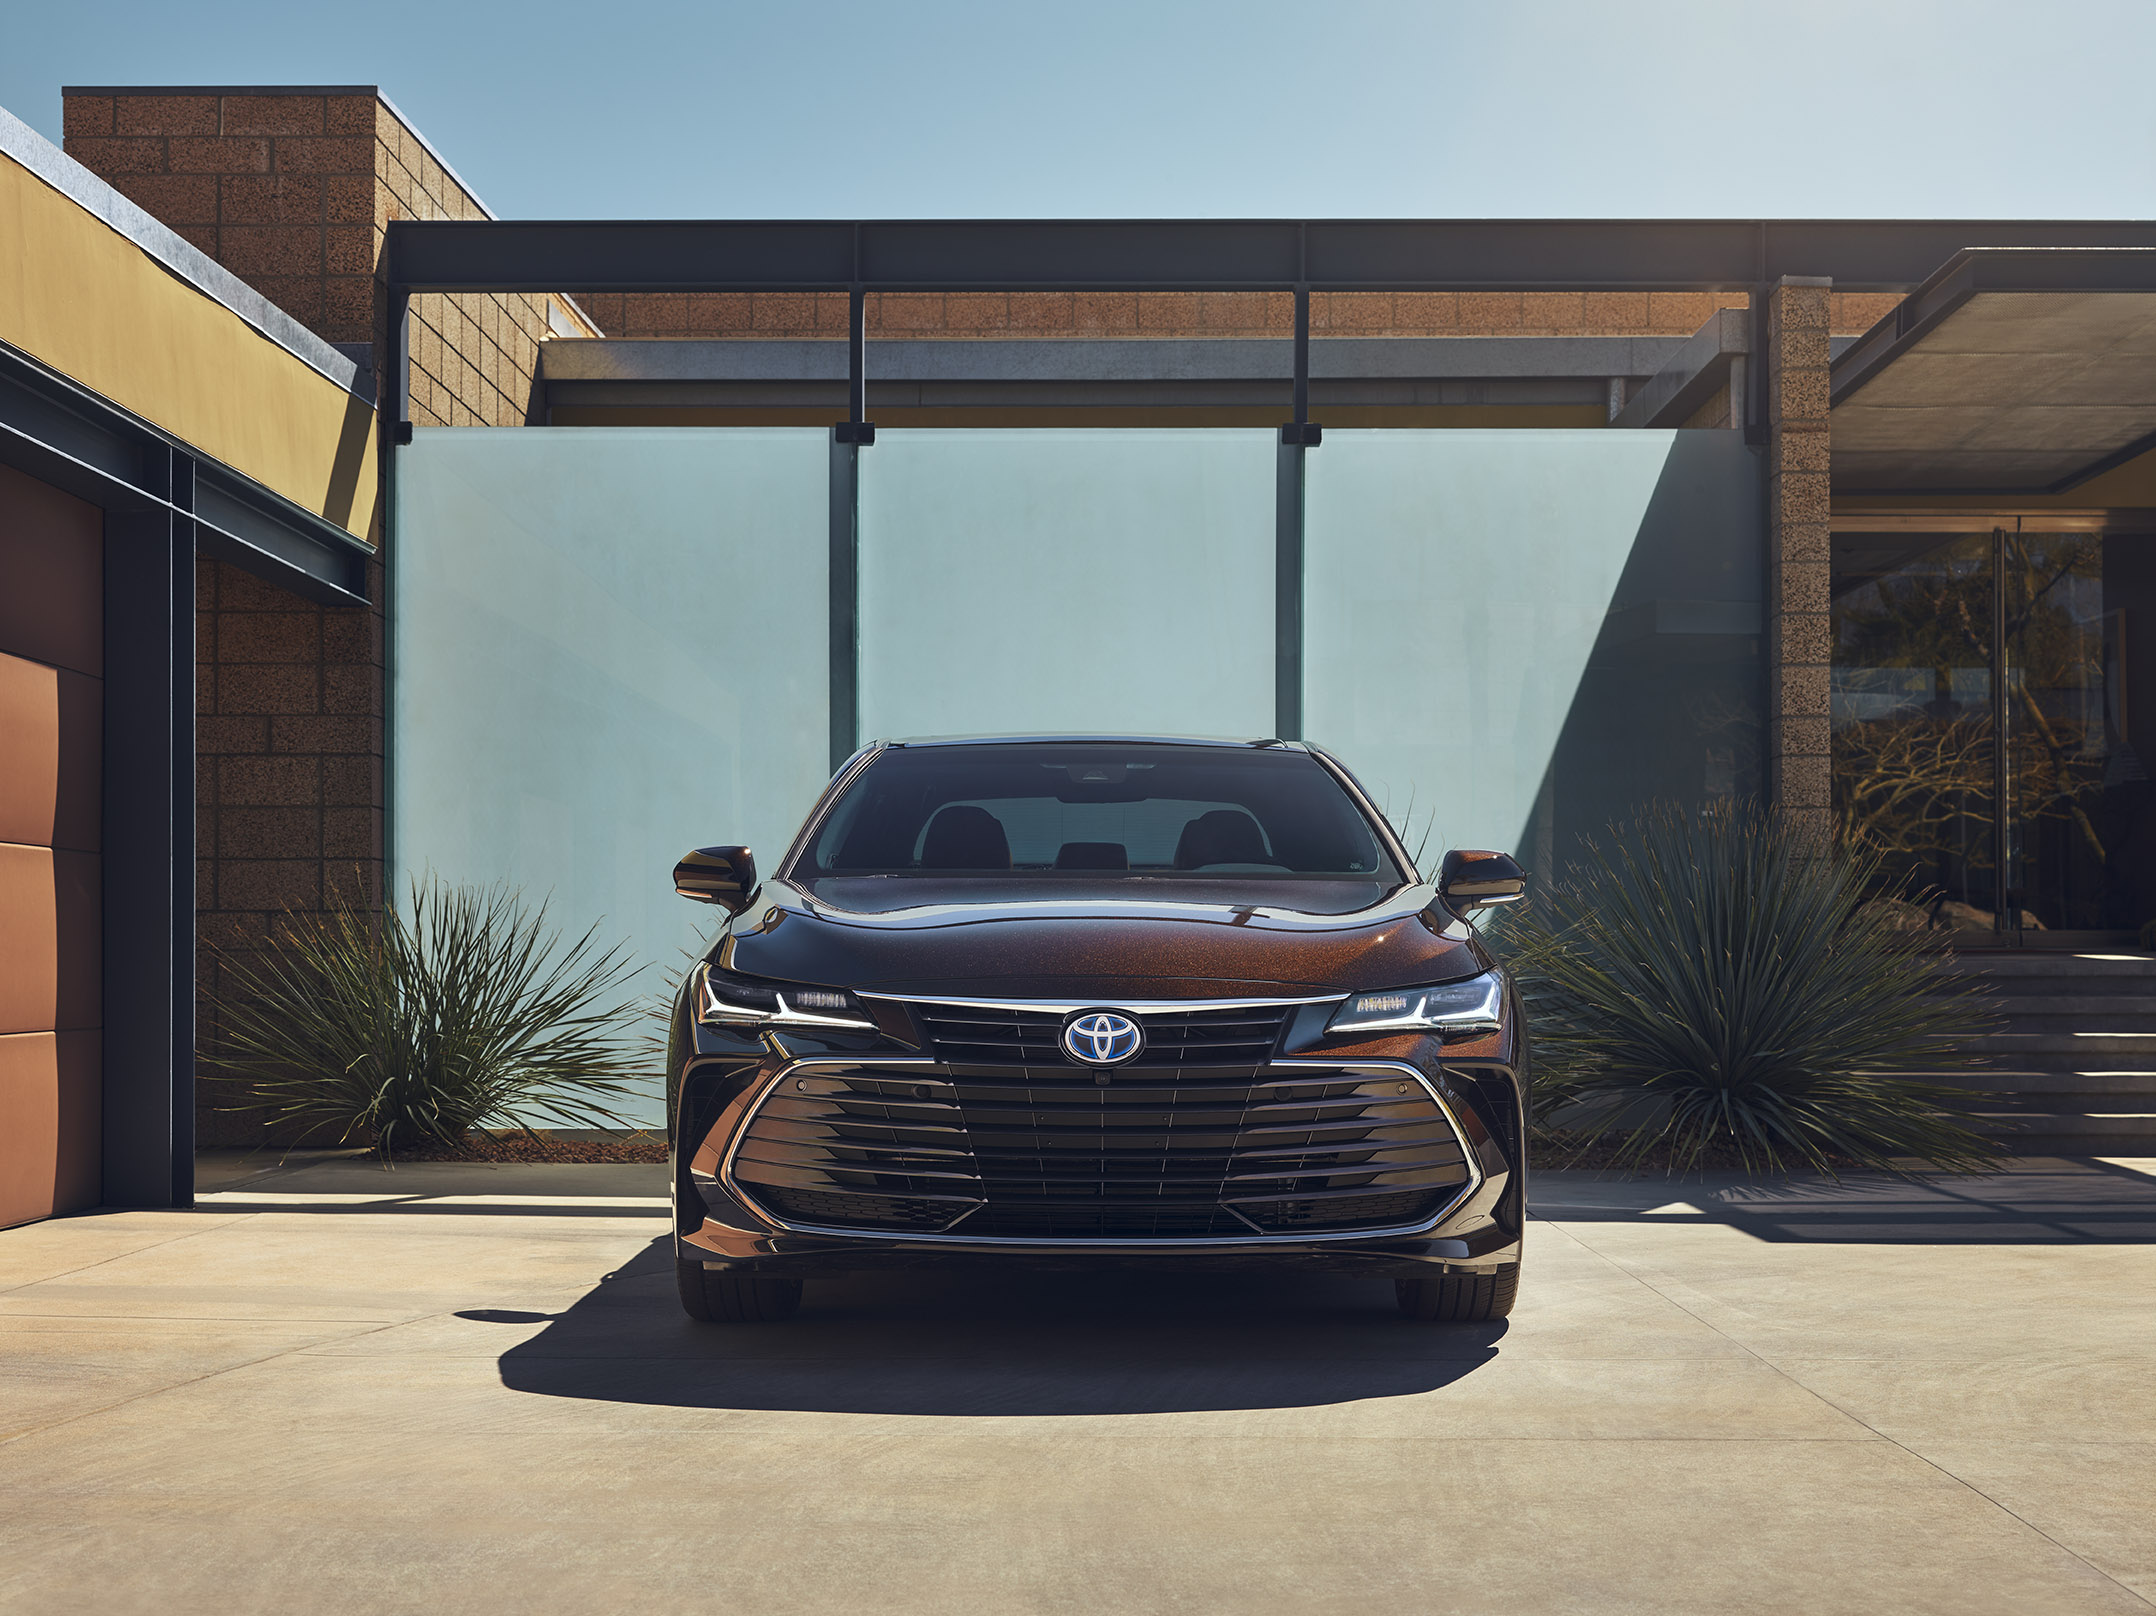 18-012_Toyota_Avalon_SHOT_31_COMP05_AND